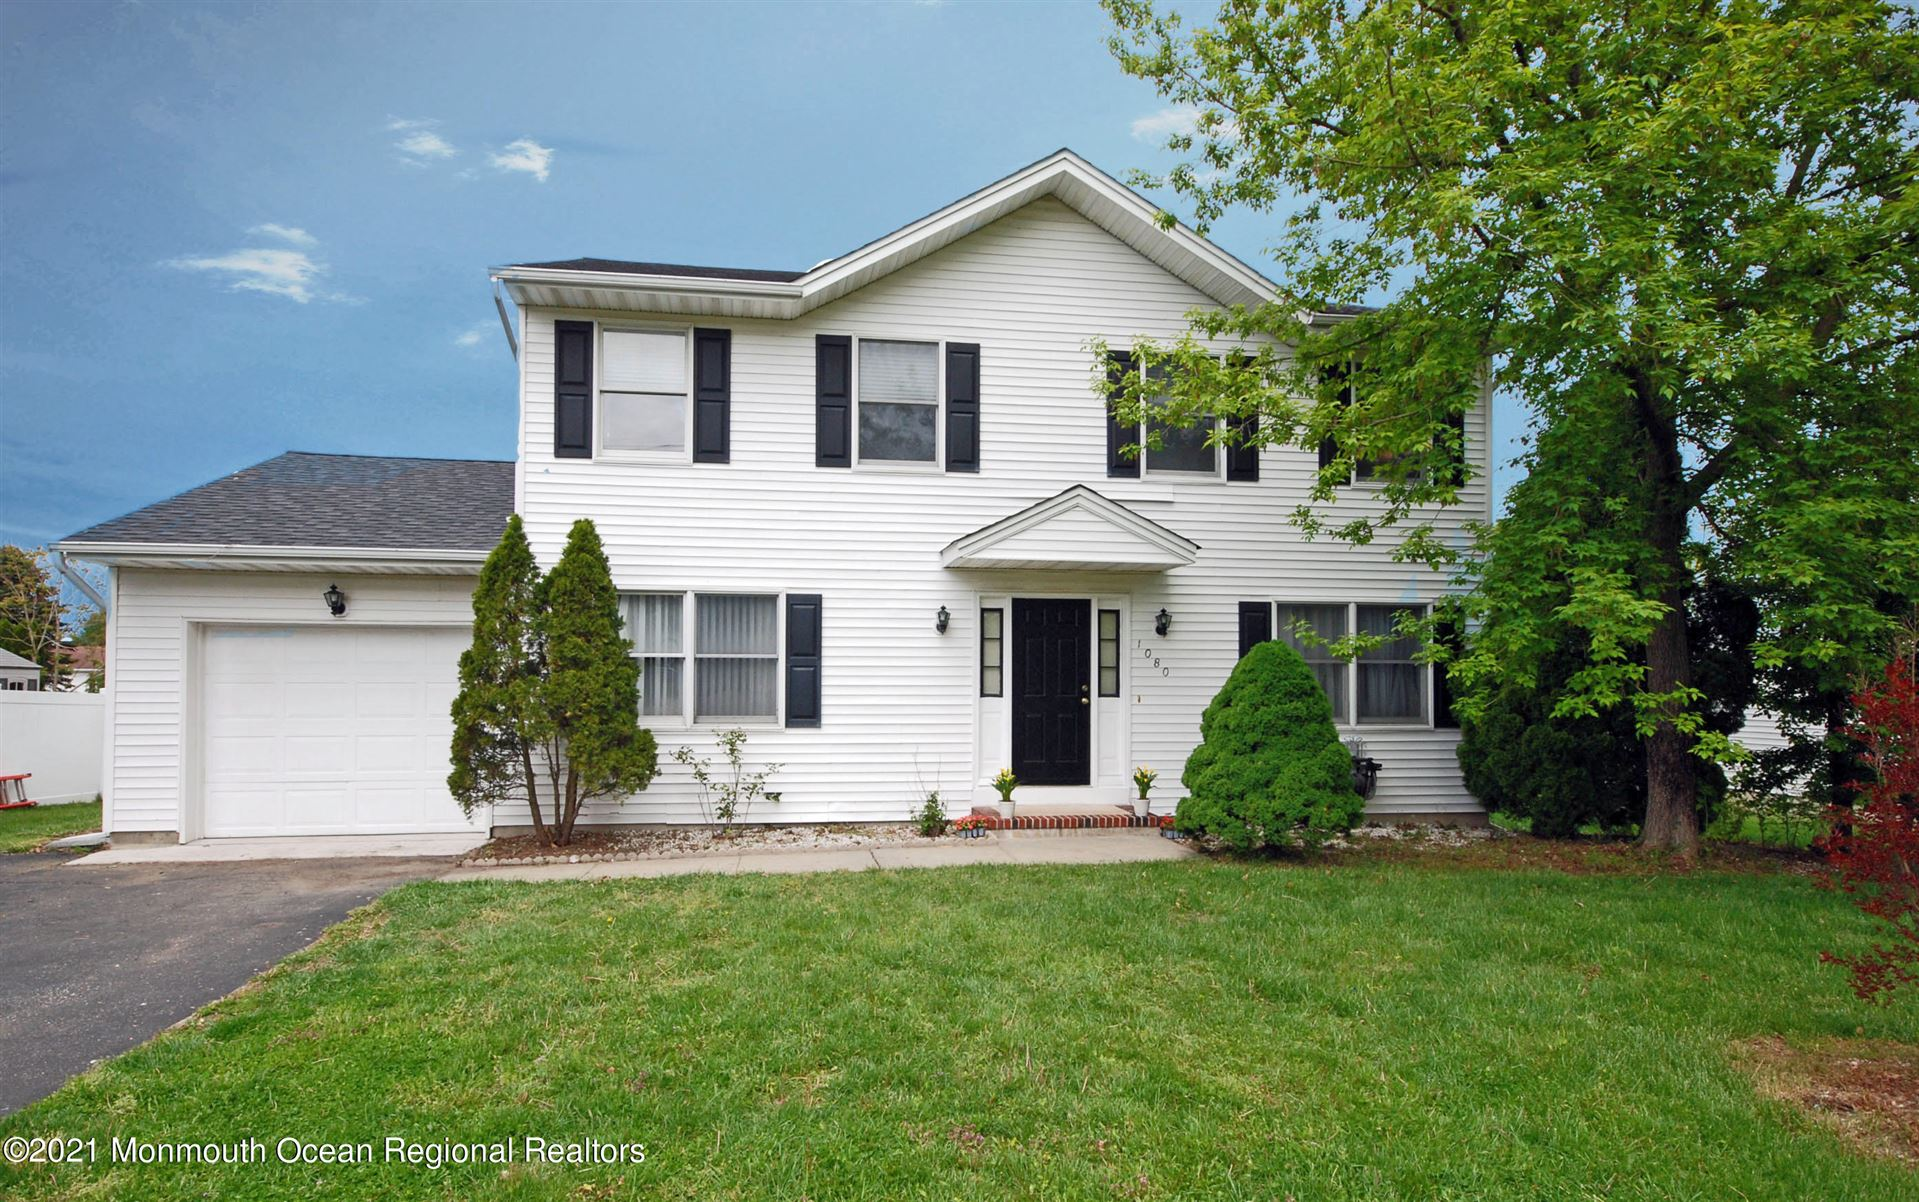 1080 Old Freehold Road, Toms River, NJ 08753 - MLS#: 22114144